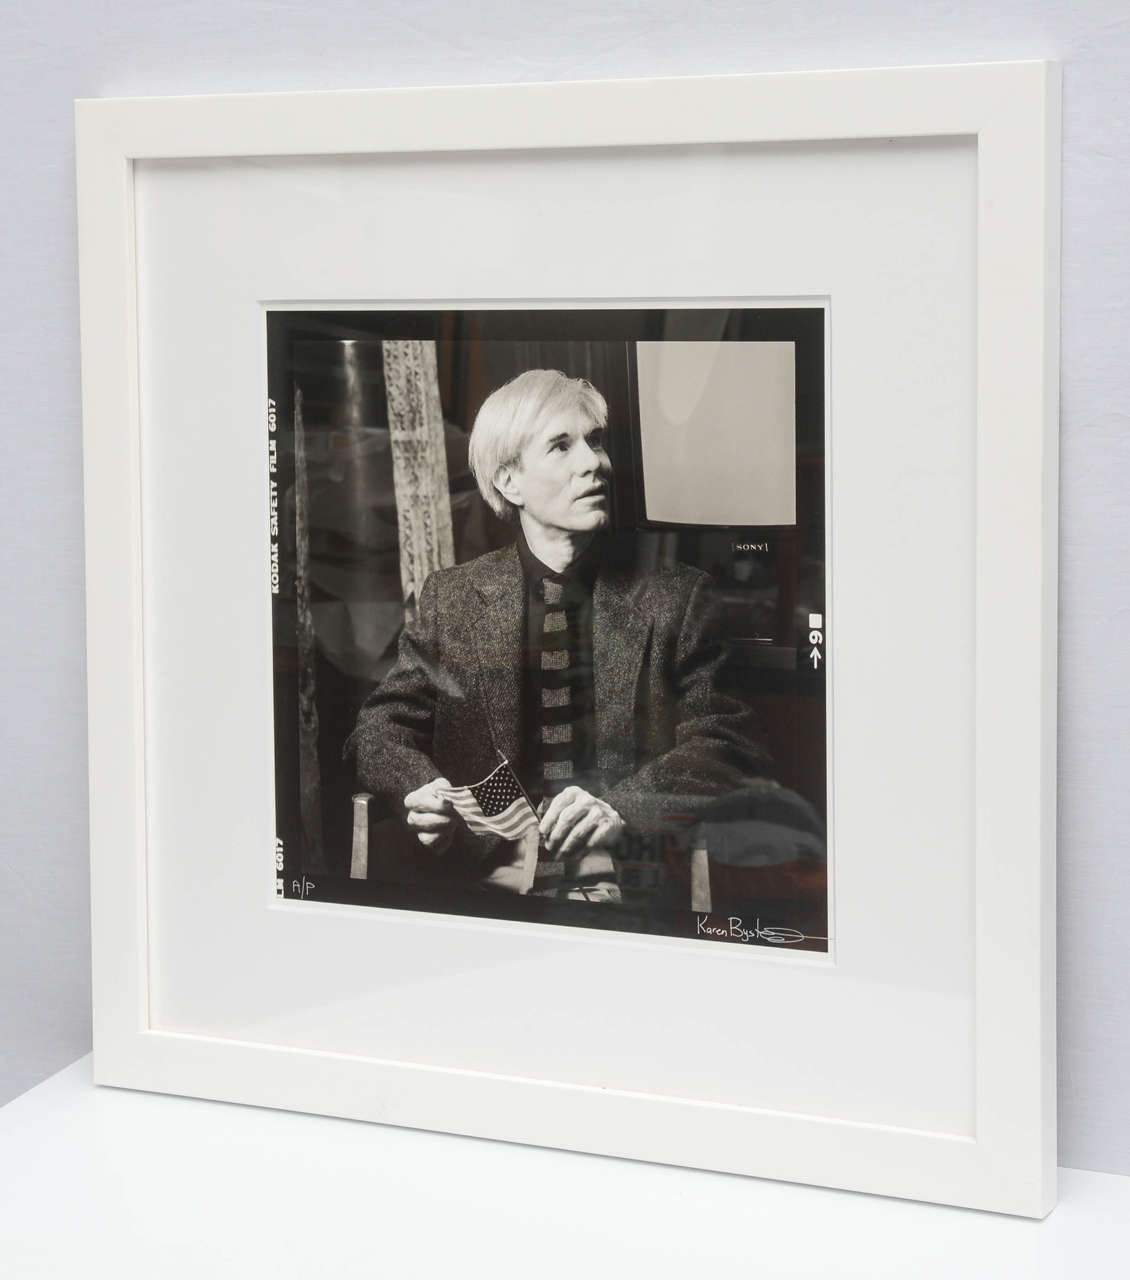 Gorgeous black and white Artists Proof photograph of Andy Warhol at the Factory 1980s New York by Karen Bystedt. Item comes framed.  Unframed, the photo is 15 x 15.